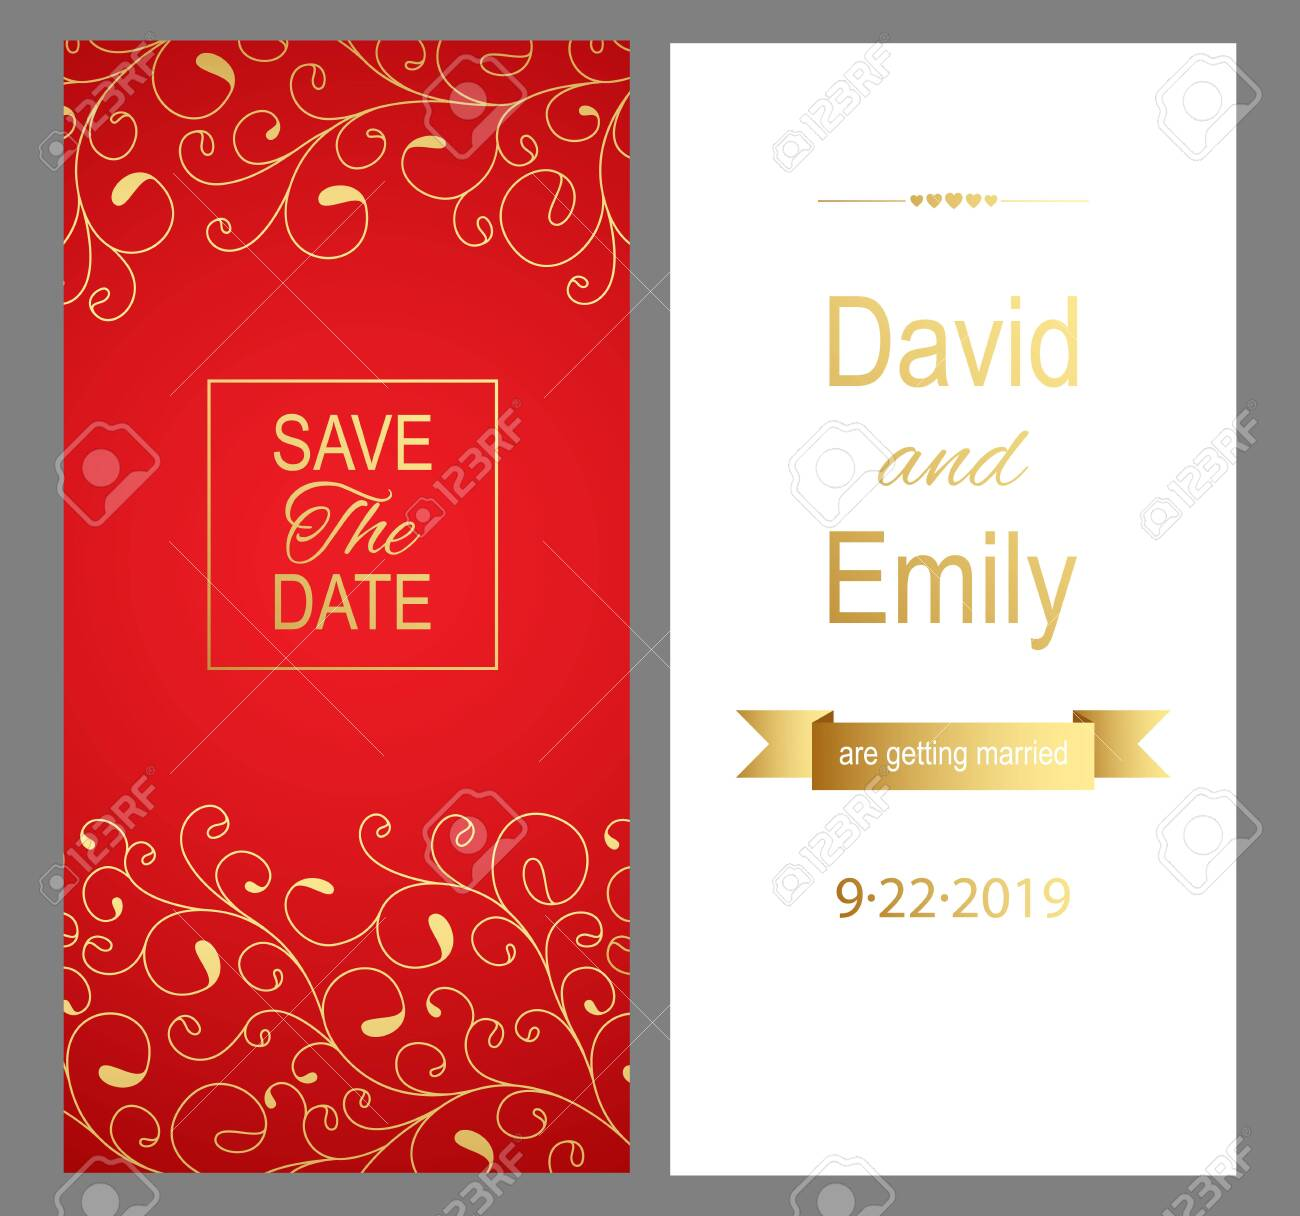 Save The Date Red Wedding Invitation Card For Your Design Vector